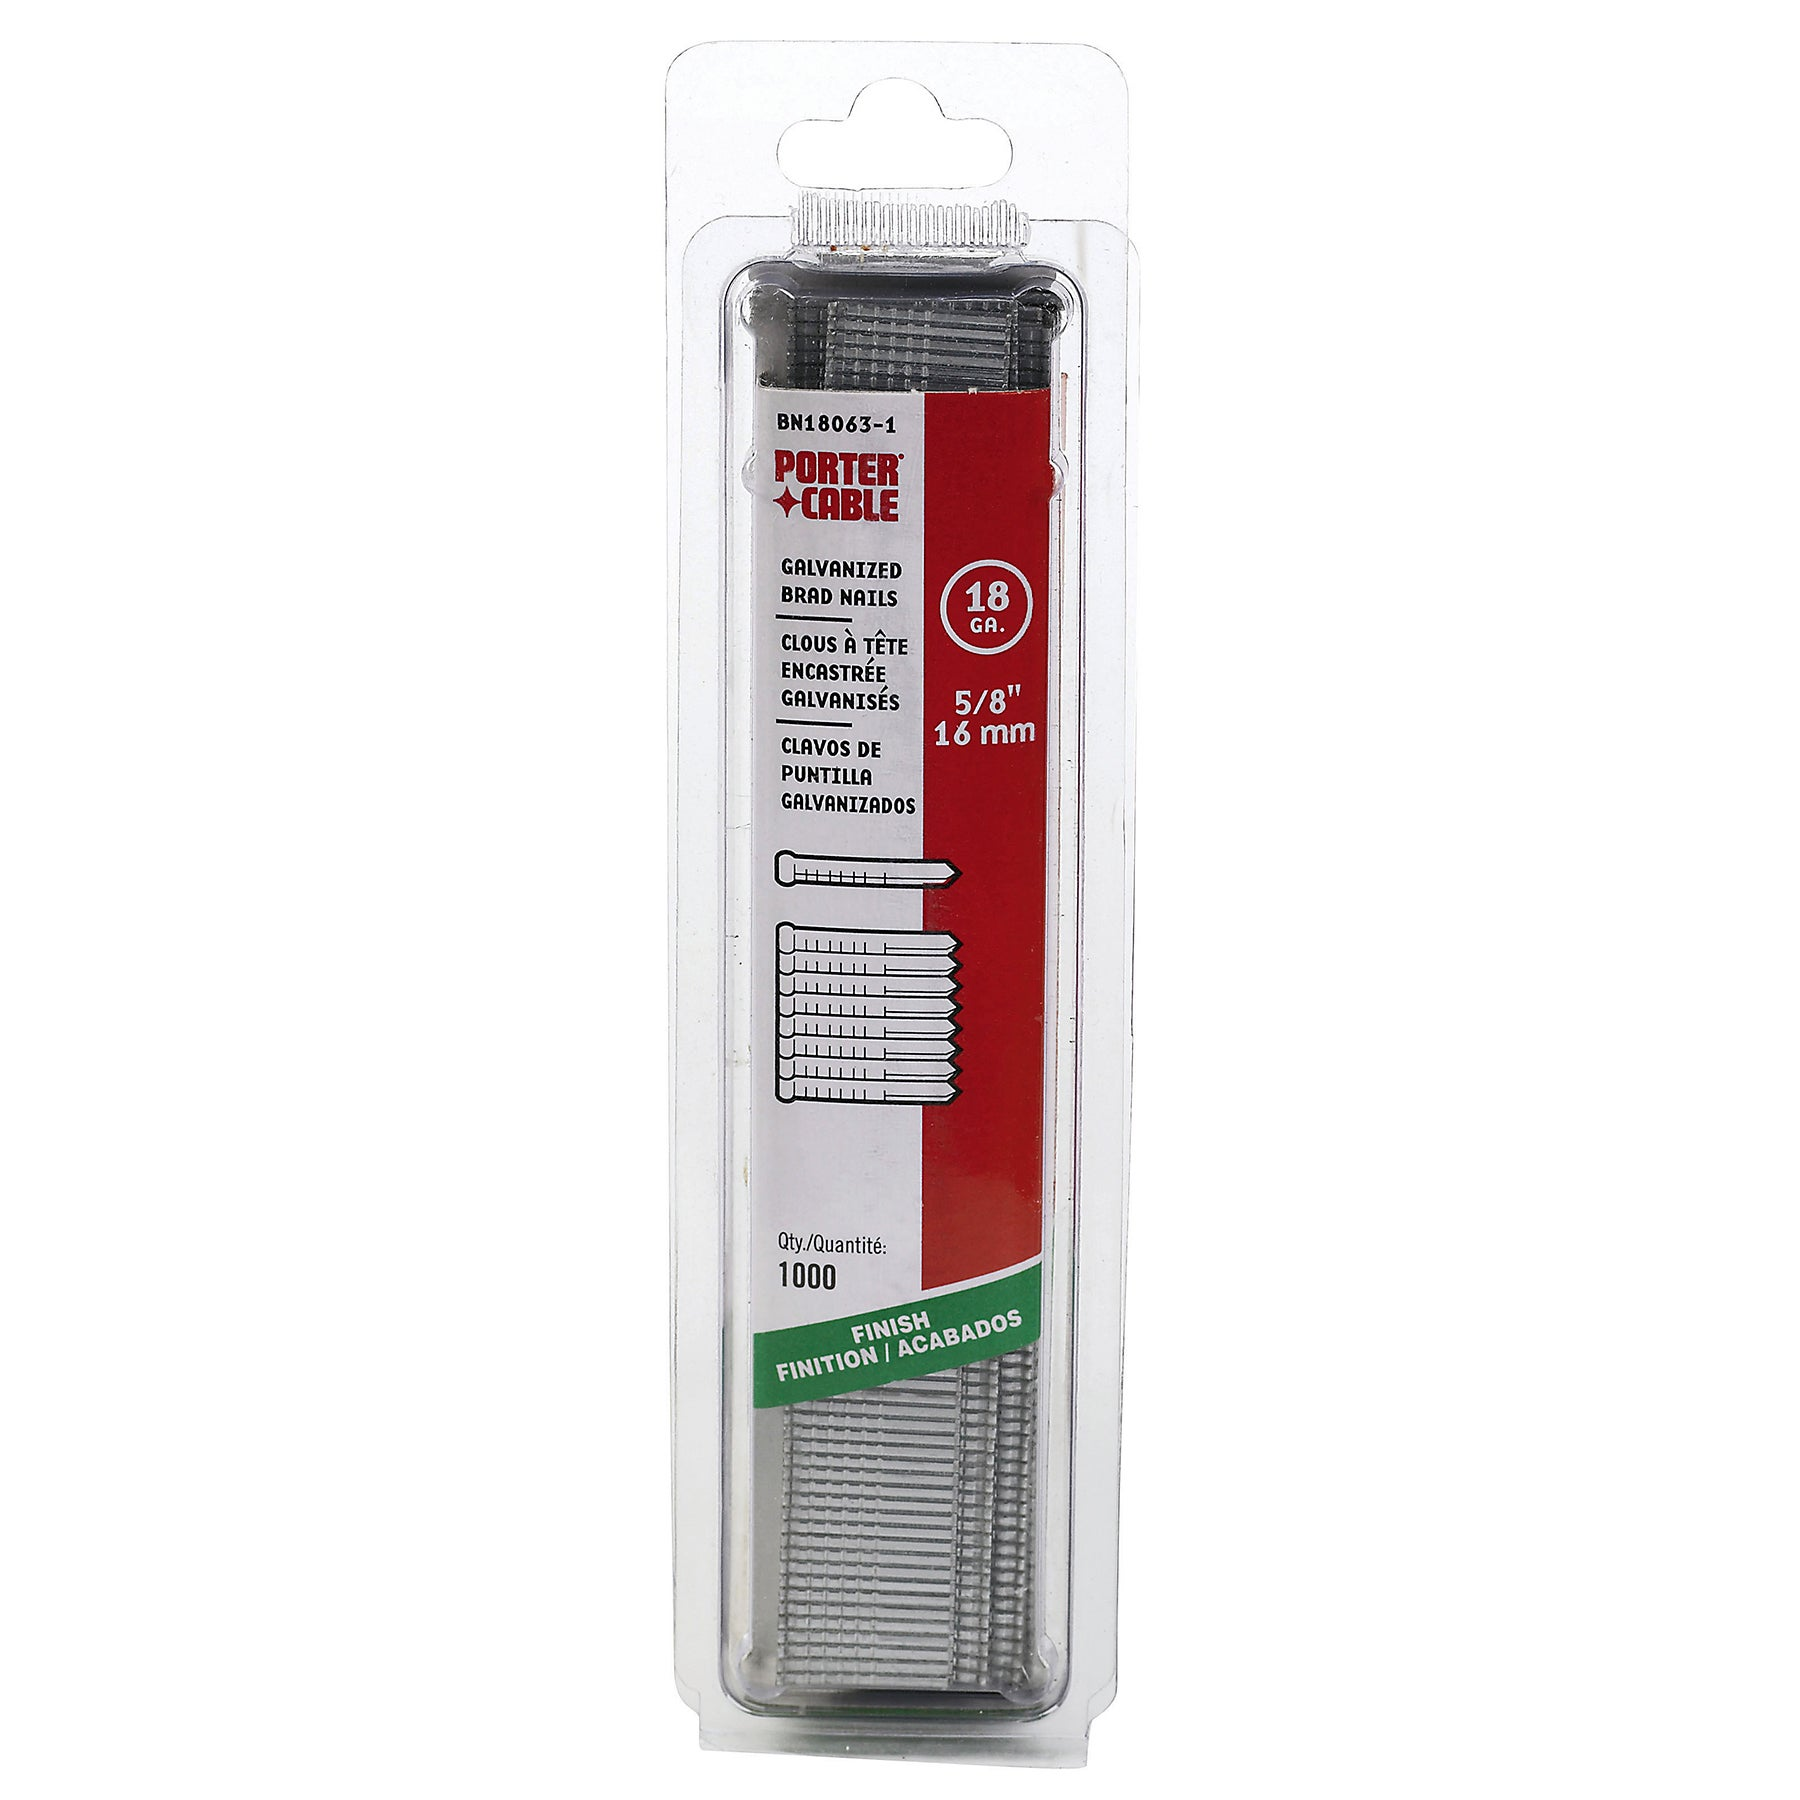 """Porter Cable PBN18063-1 1,000-count 5/8"""" 18 Gauge Brad Na..."""